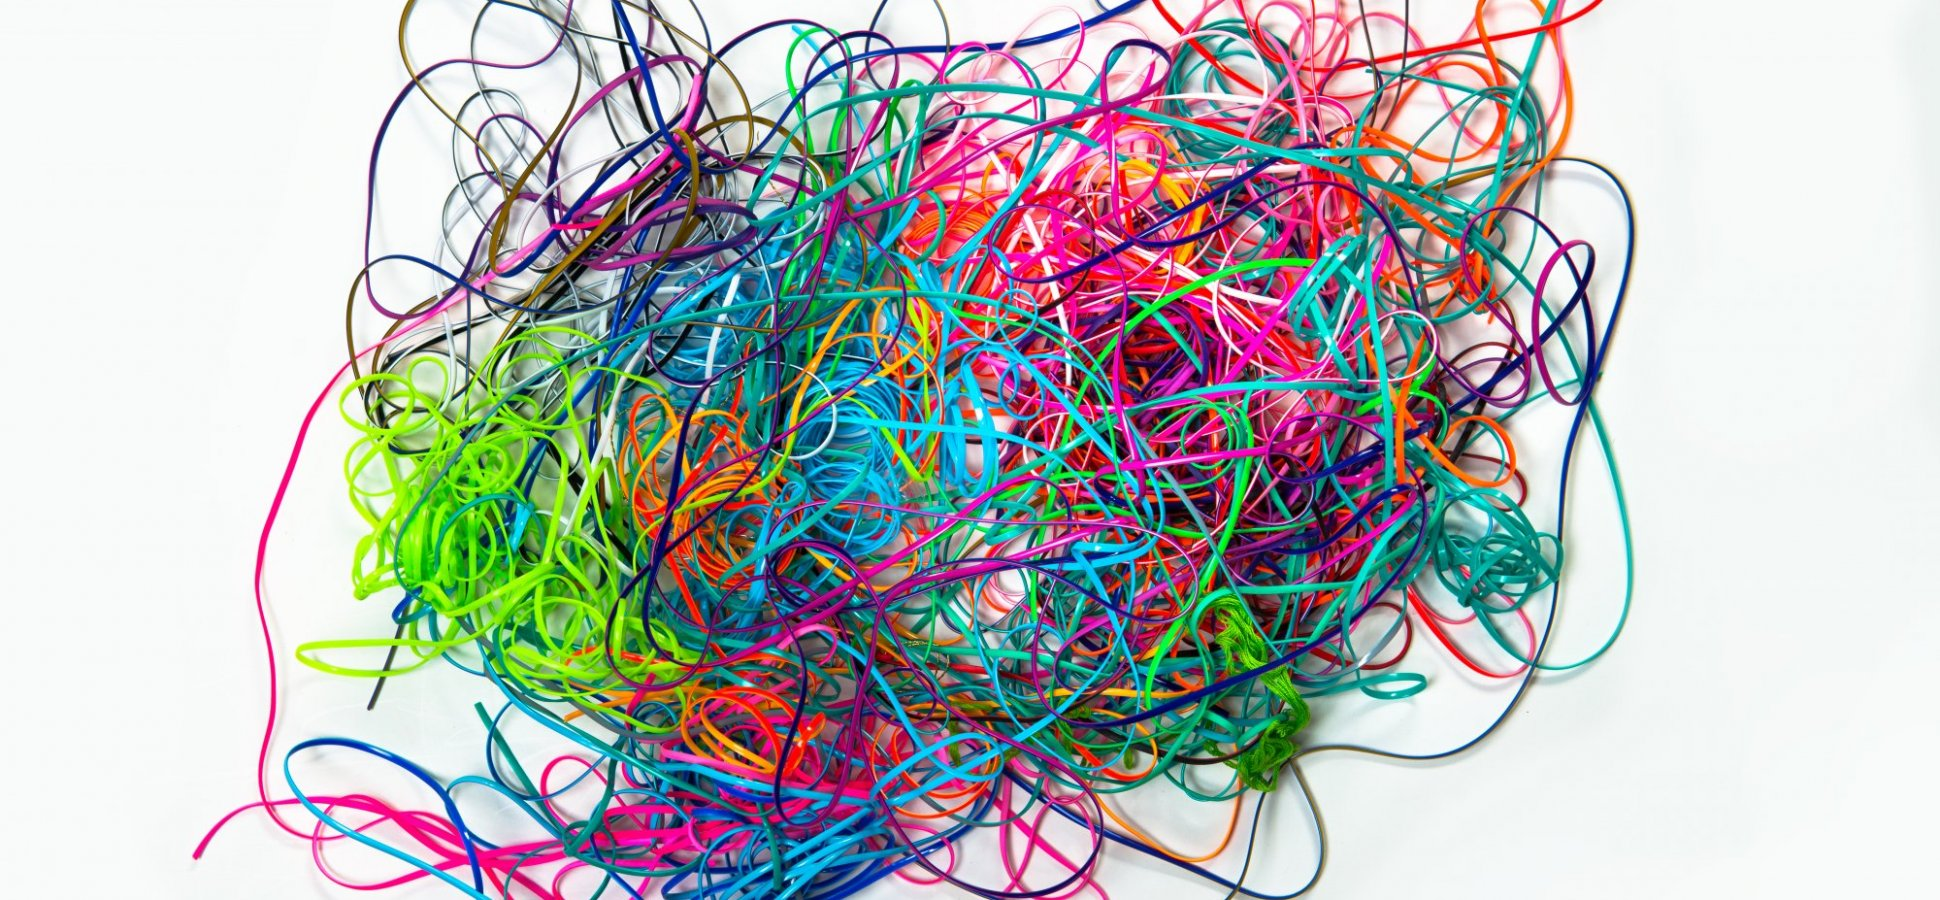 How to Manage 'Wild and Unpredictable' Creative Chaos in Business